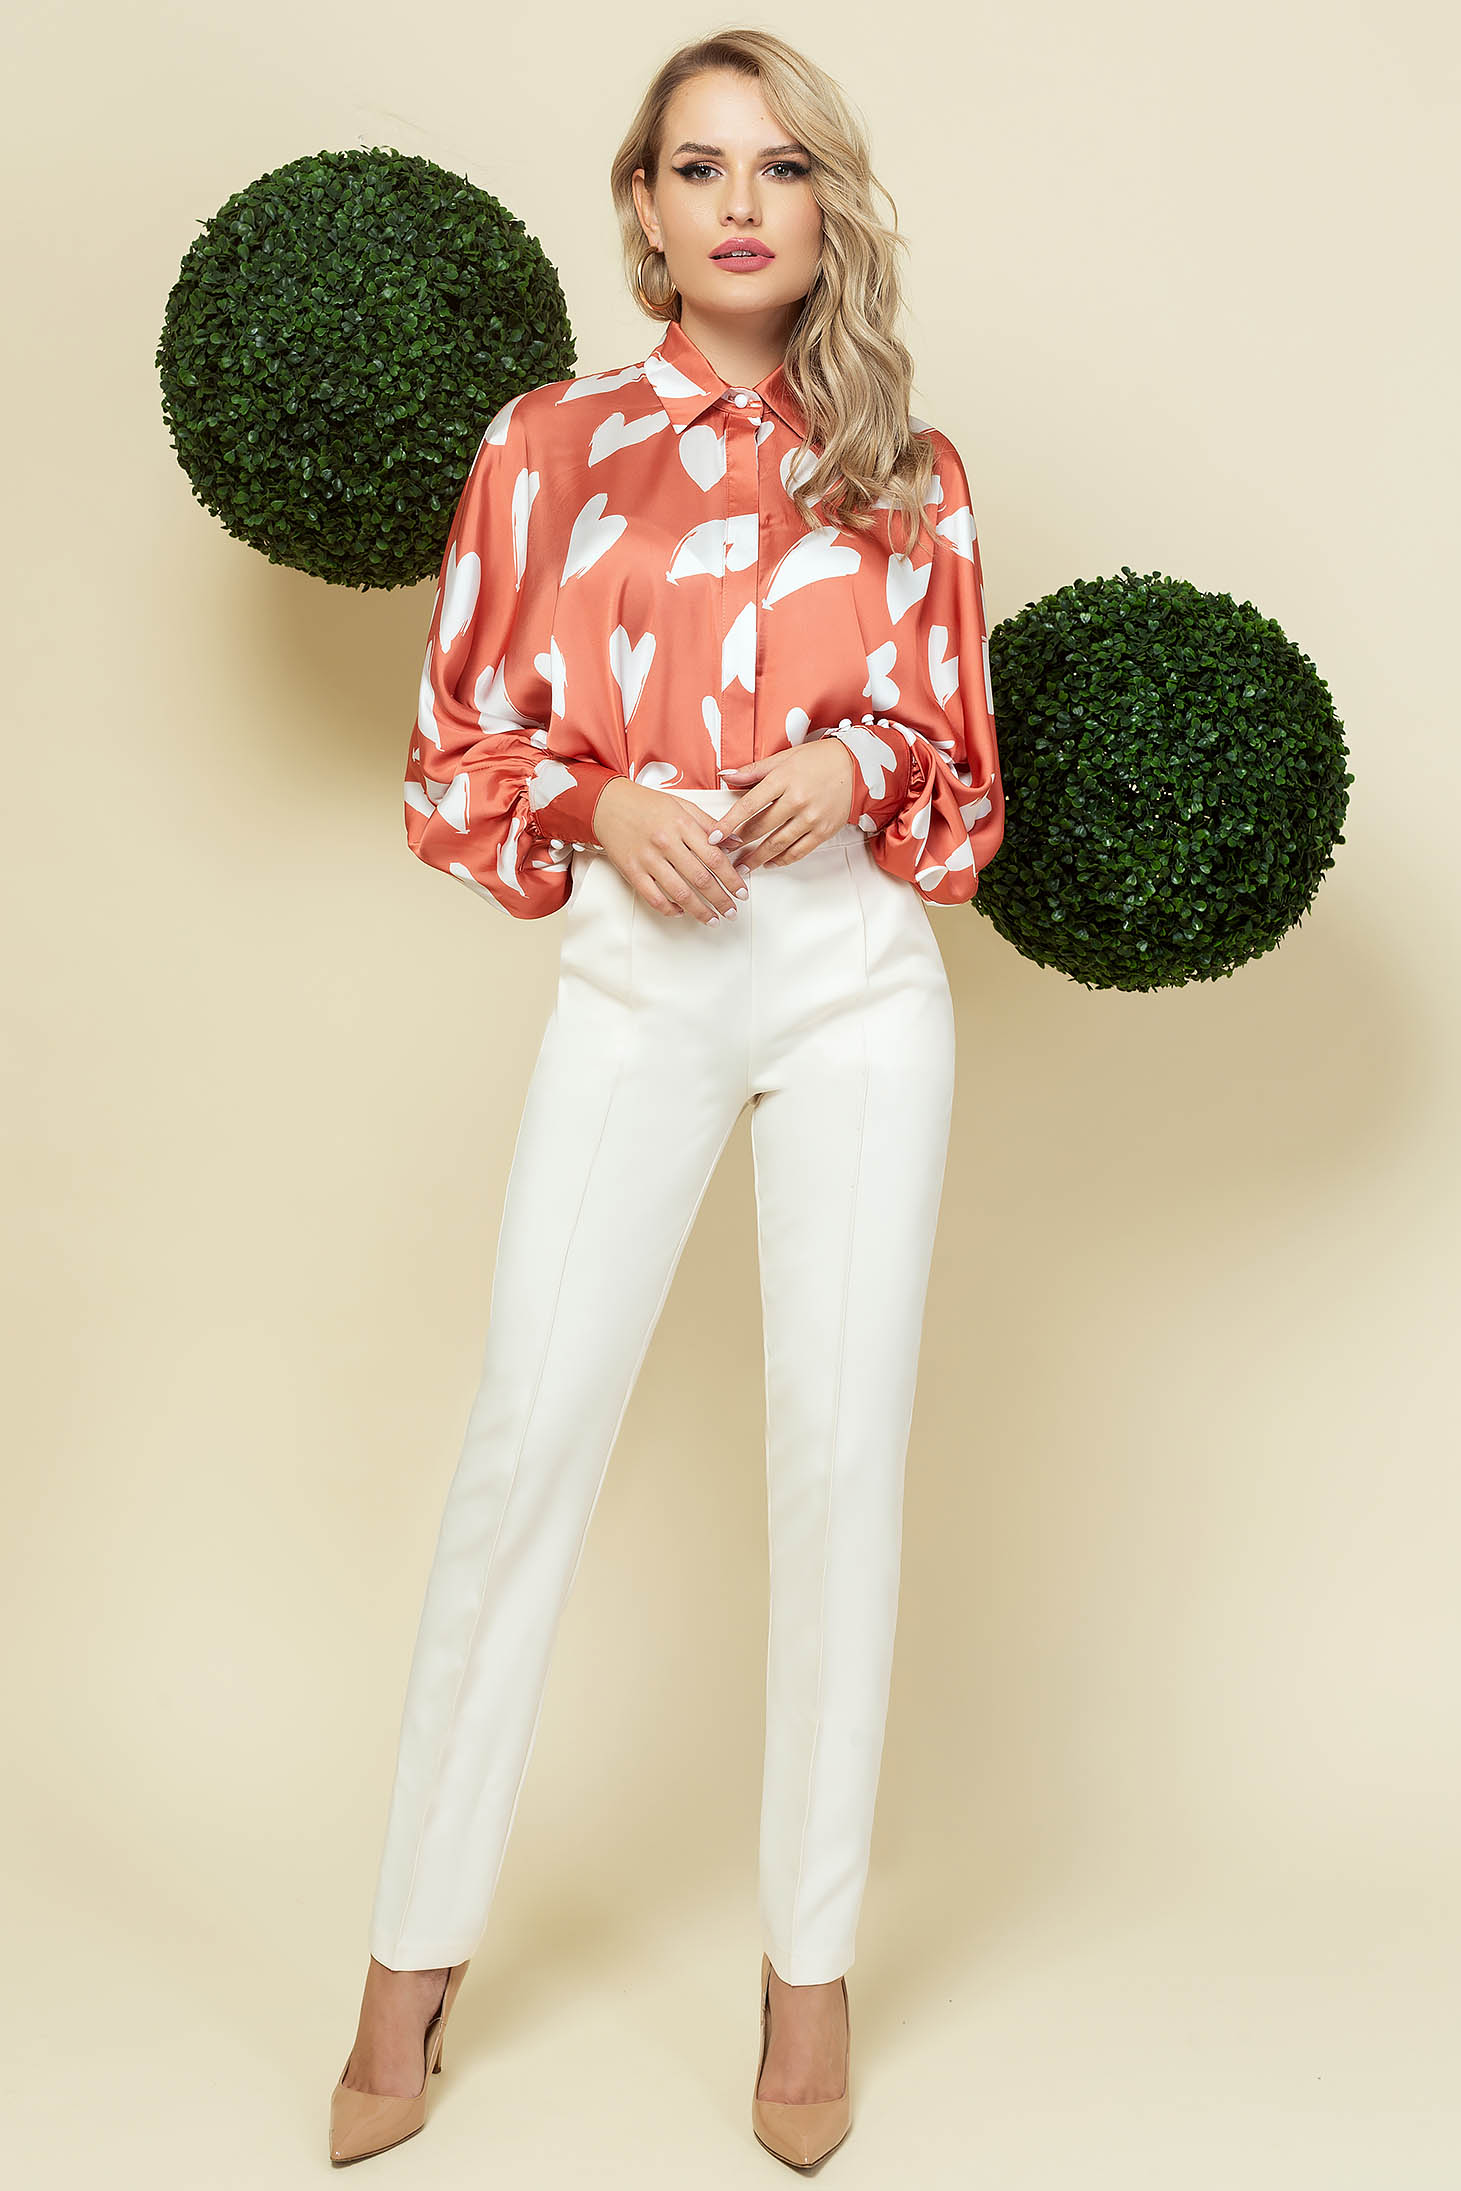 White trousers office cloth thin fabric with vertical stripes with pockets